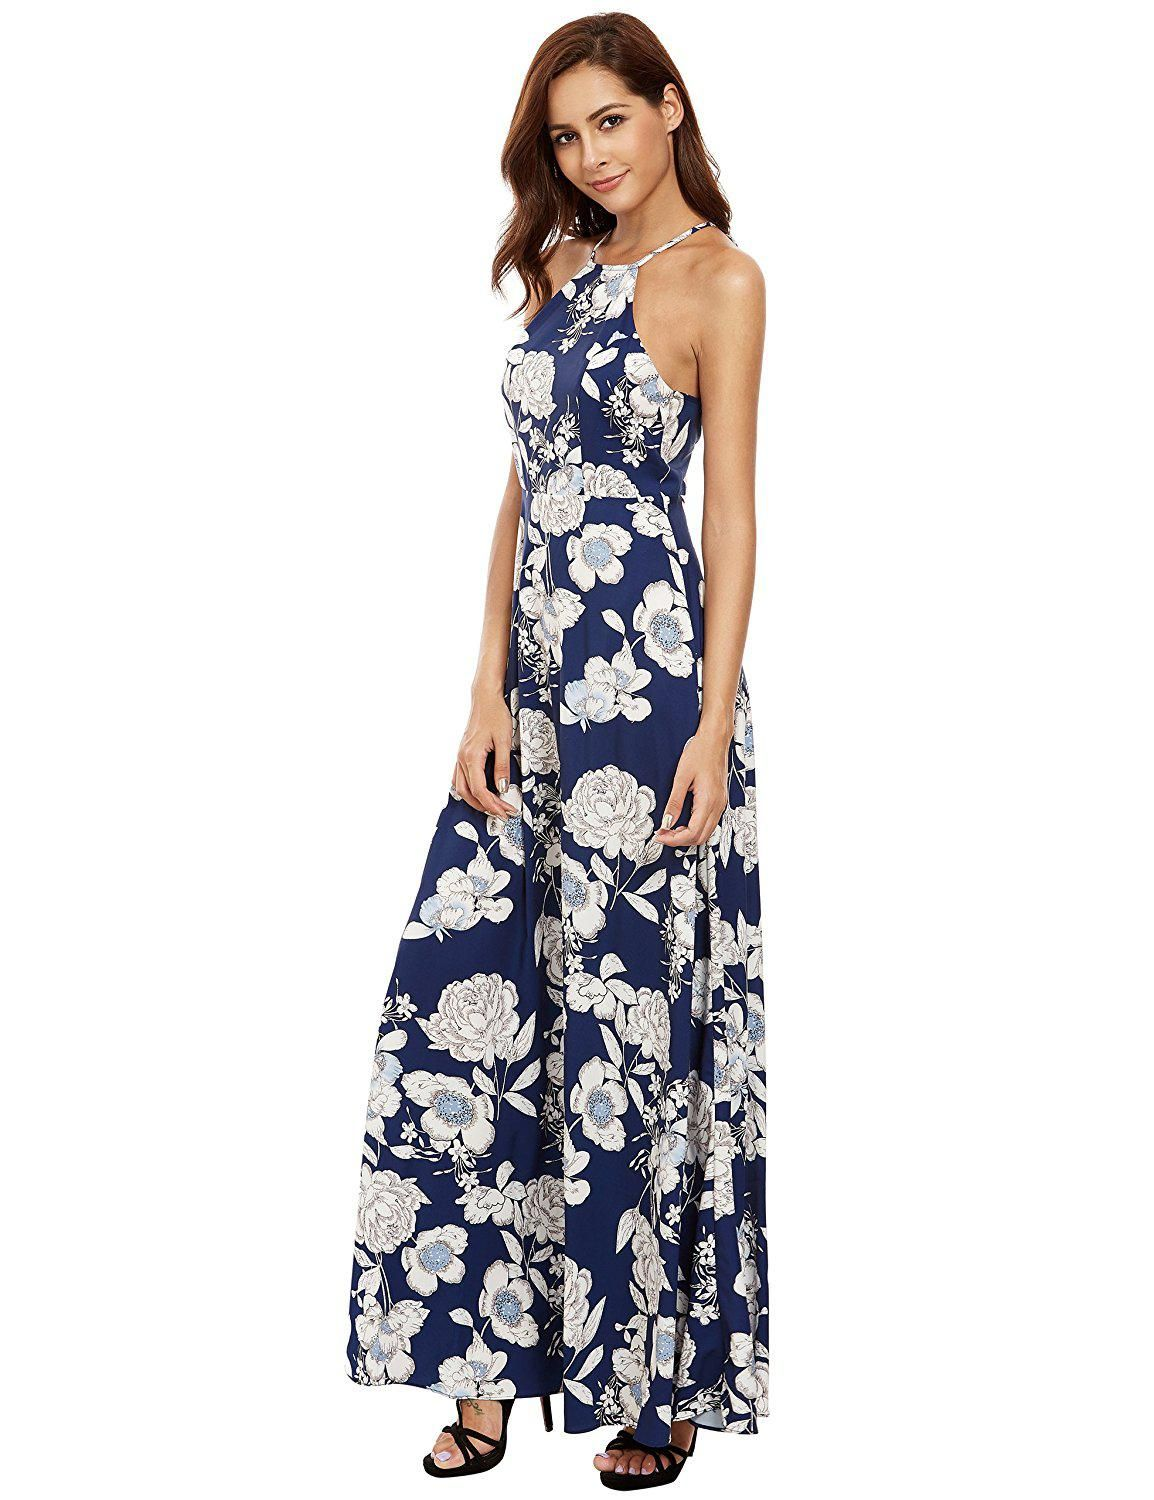 4044f5803b Floerns Womens Sleeveless Halter Neck Vintage Floral Print Maxi Dress at  Amazon Womens Clothing store -- Amazon Affiliate link.